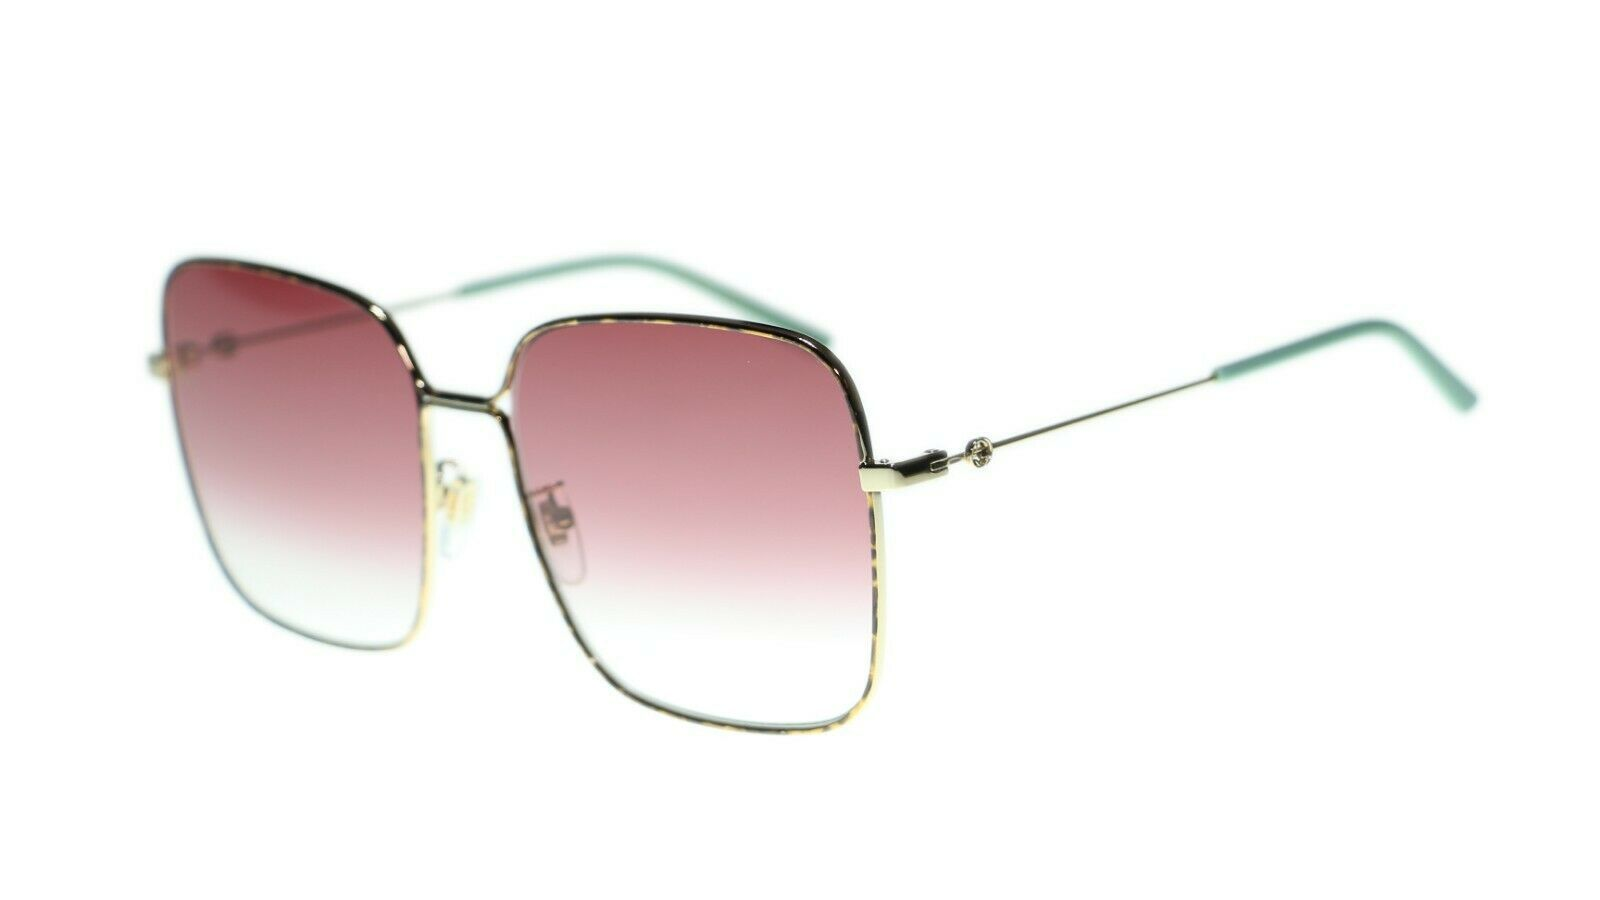 92aa1e31d64 New Gucci Women s GG0443S 003 Oversized Square Gradient Lens Sunglasses -   270.63